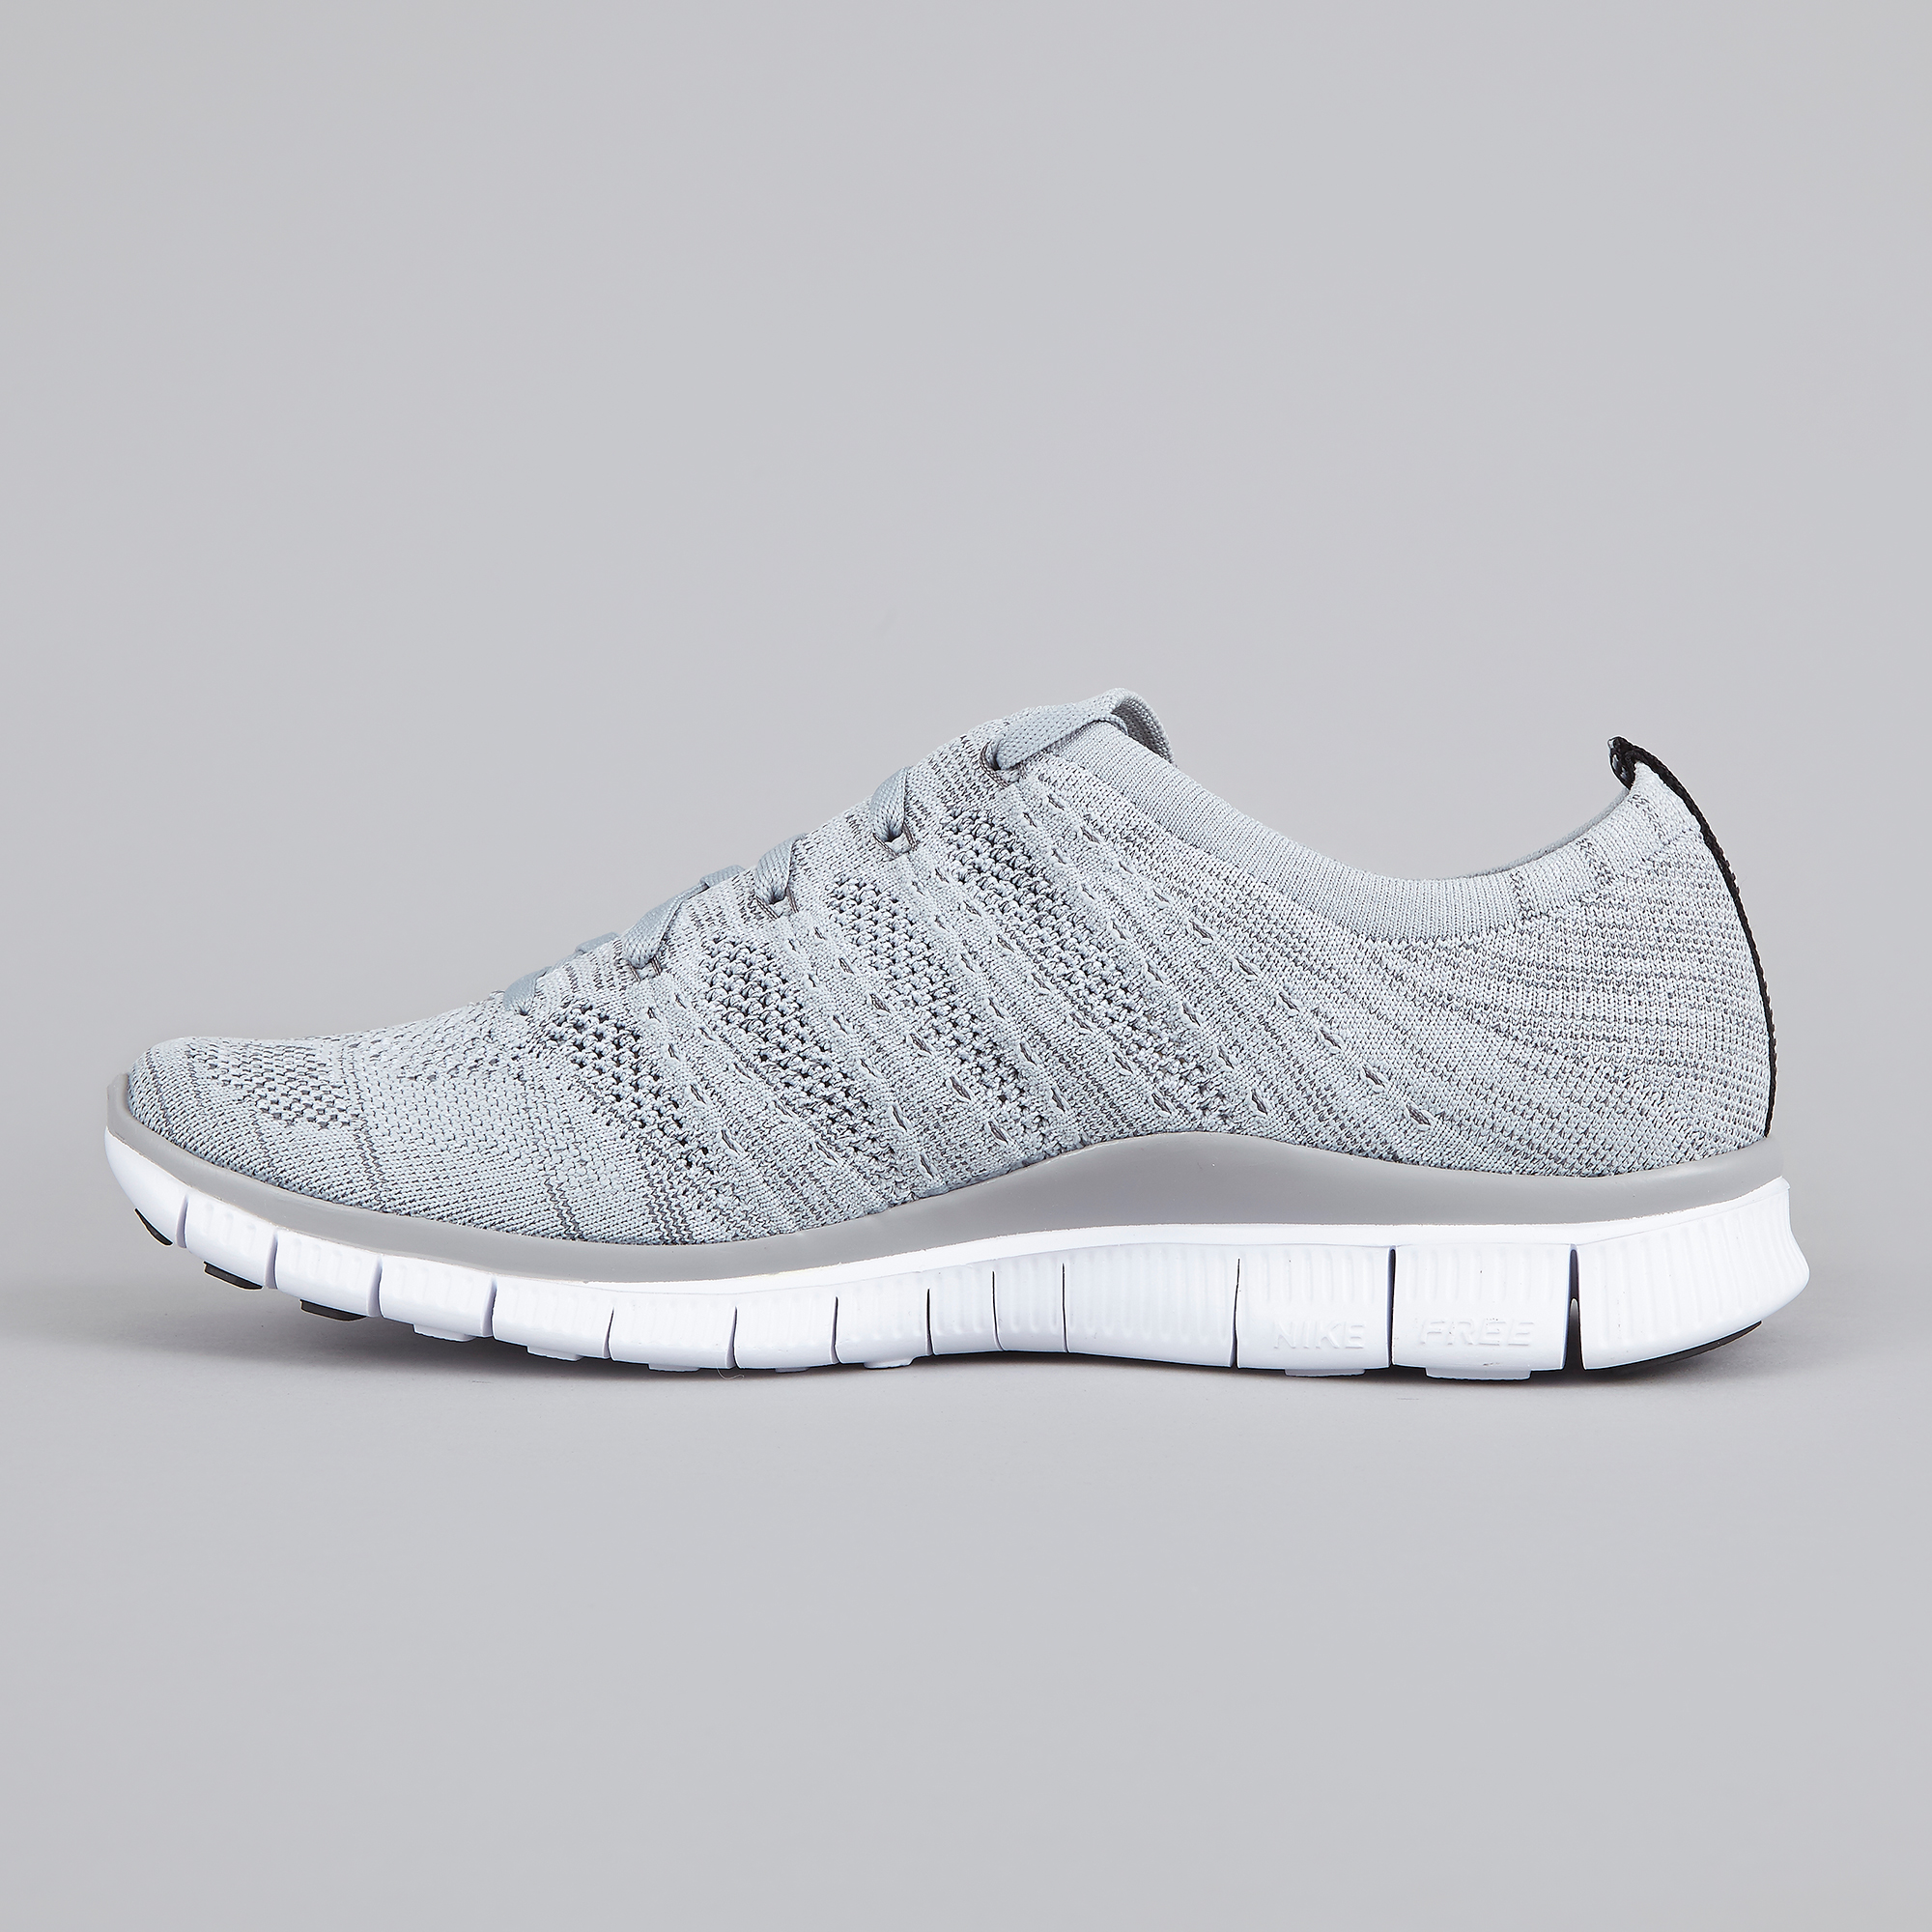 separation shoes 58a0e 800e3 Nike Free Flyknit NSW - Wolf Grey Black